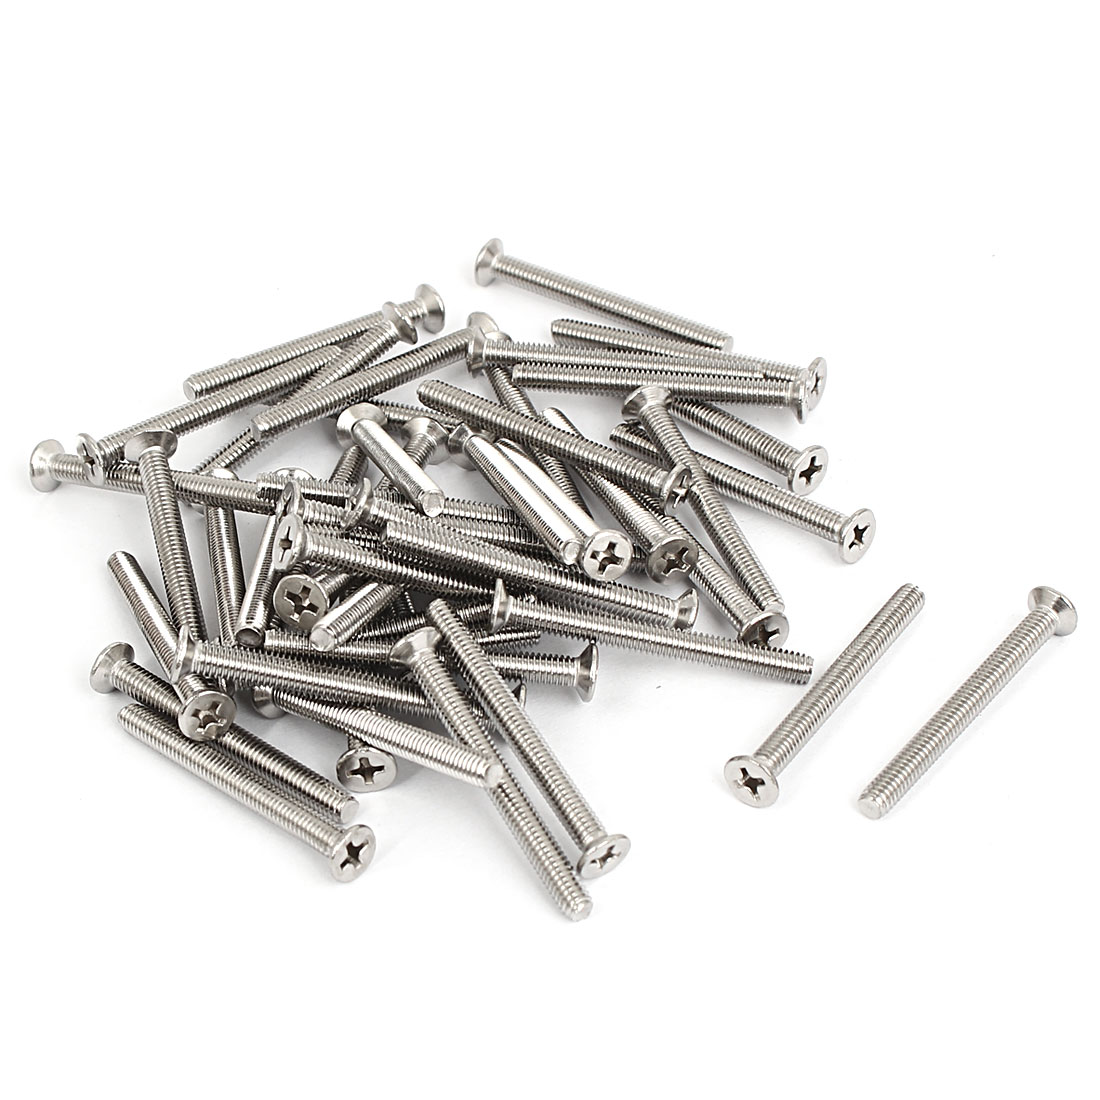 M4x40mm Stainless Steel Countersunk Flat Head Cross Phillips Screw Bolts 50pcs